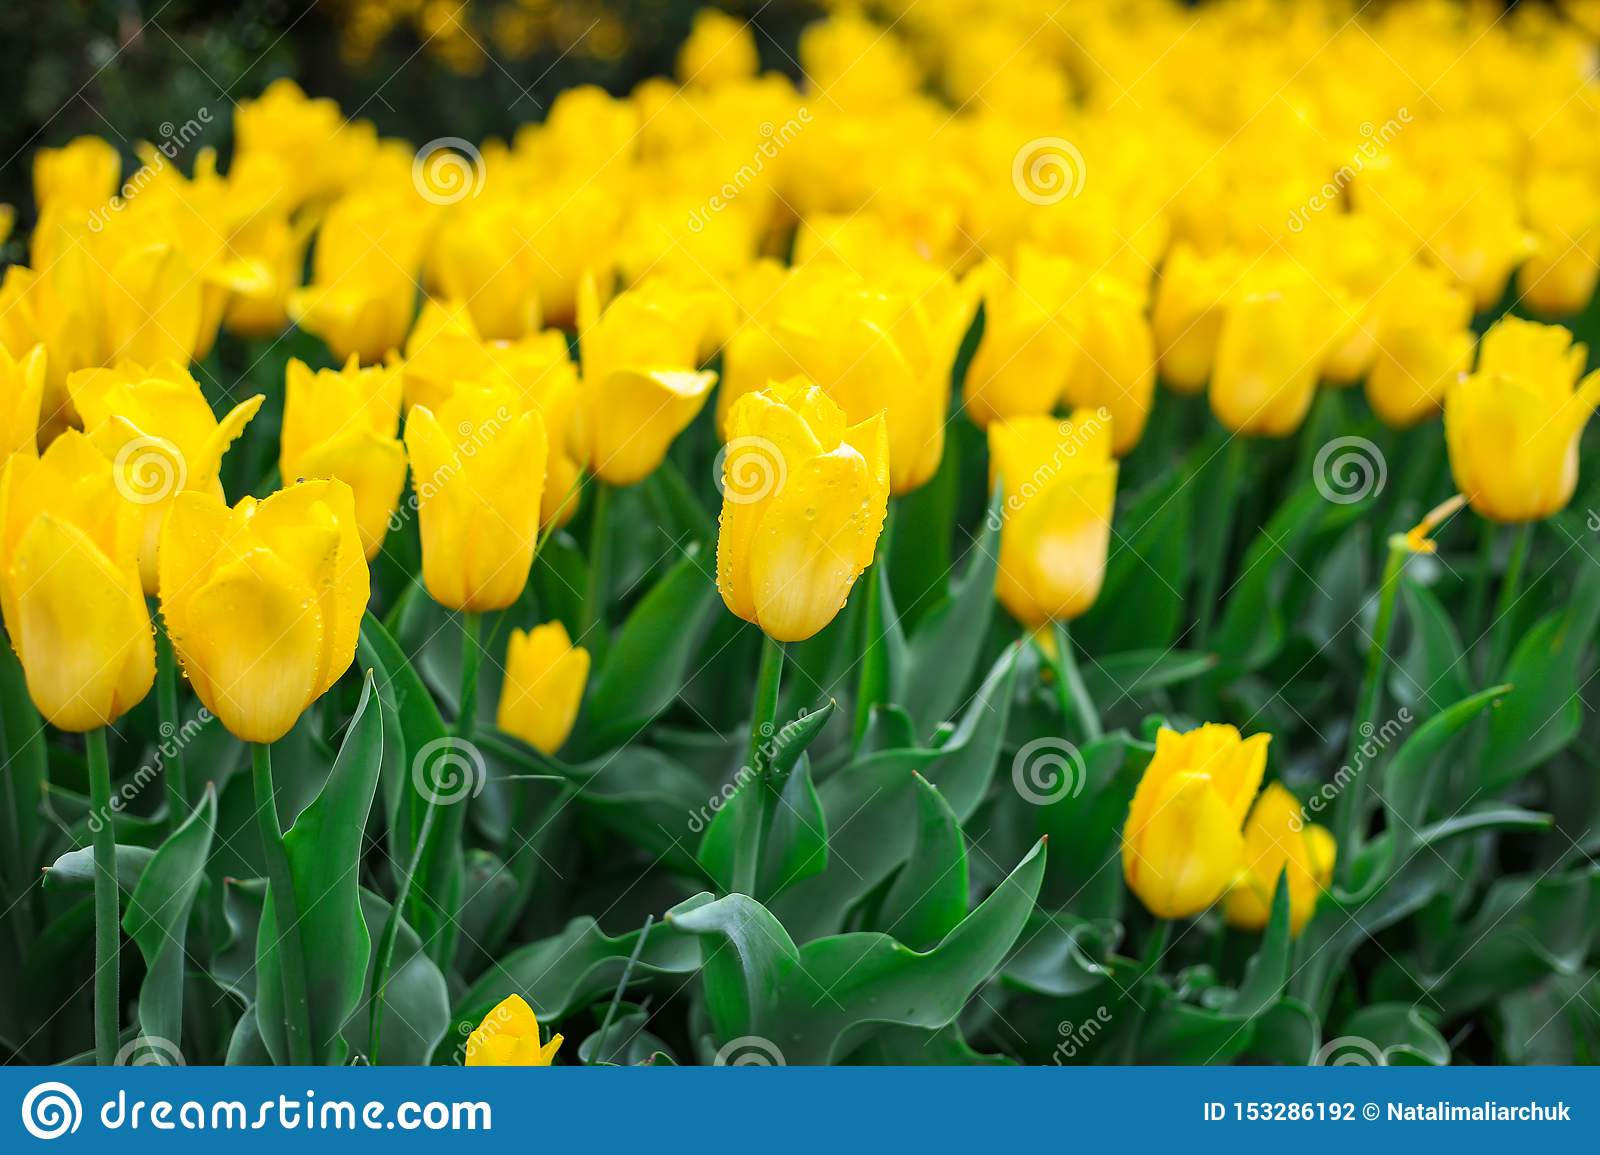 Close up of yellow tulips field after rain